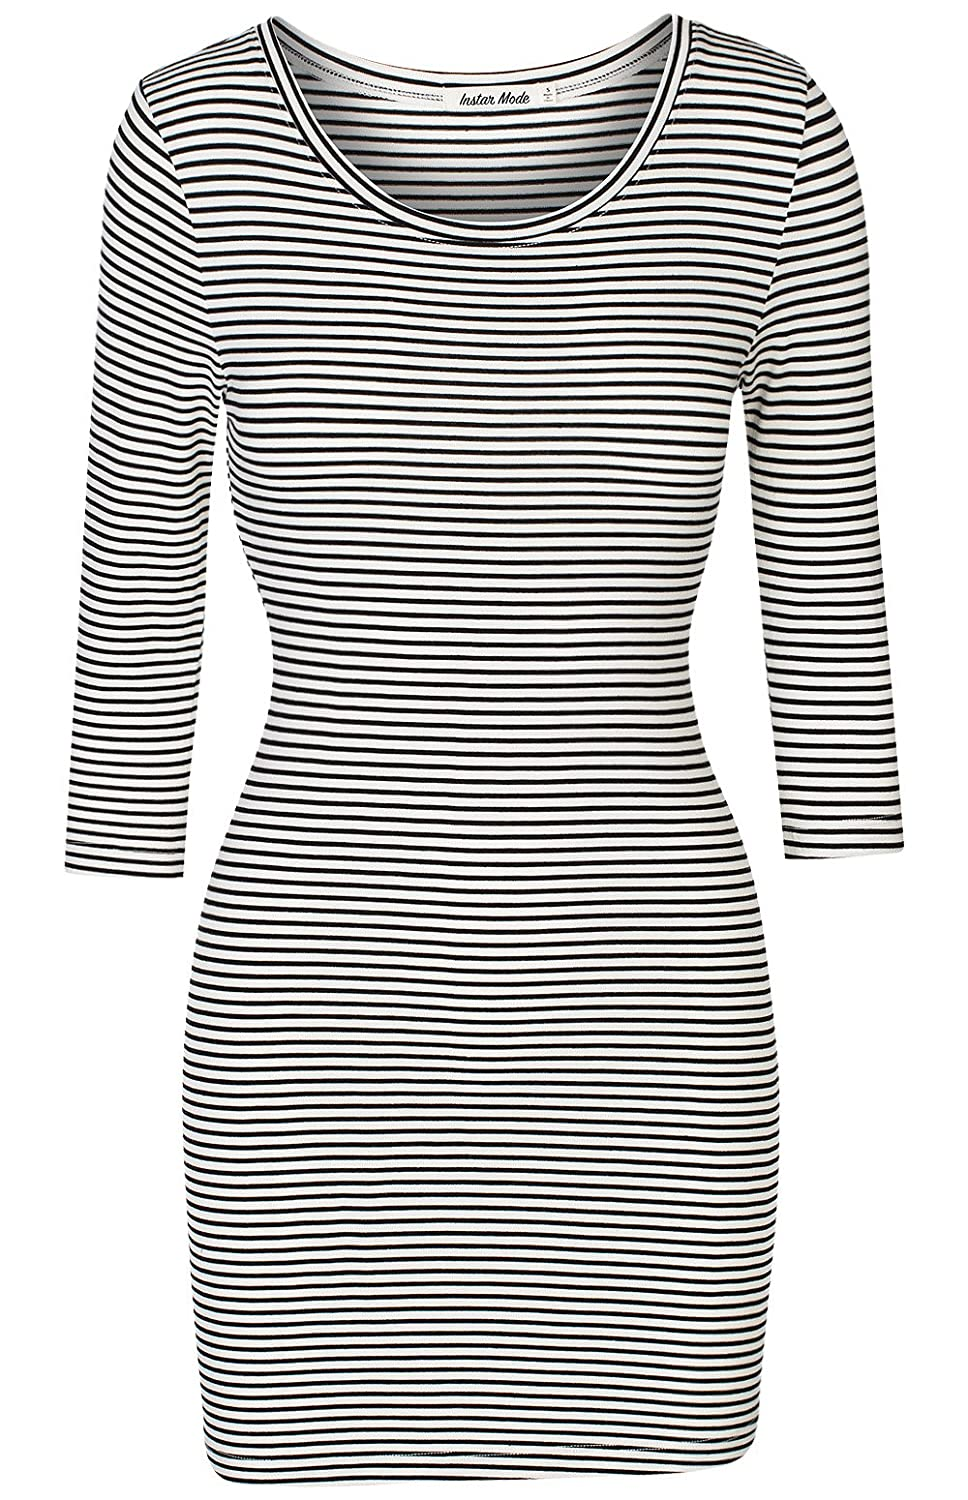 D37813 White Instar Mode Women's Classic Casual Jersey Striped 3 4 Sleeve Bodycon Dress